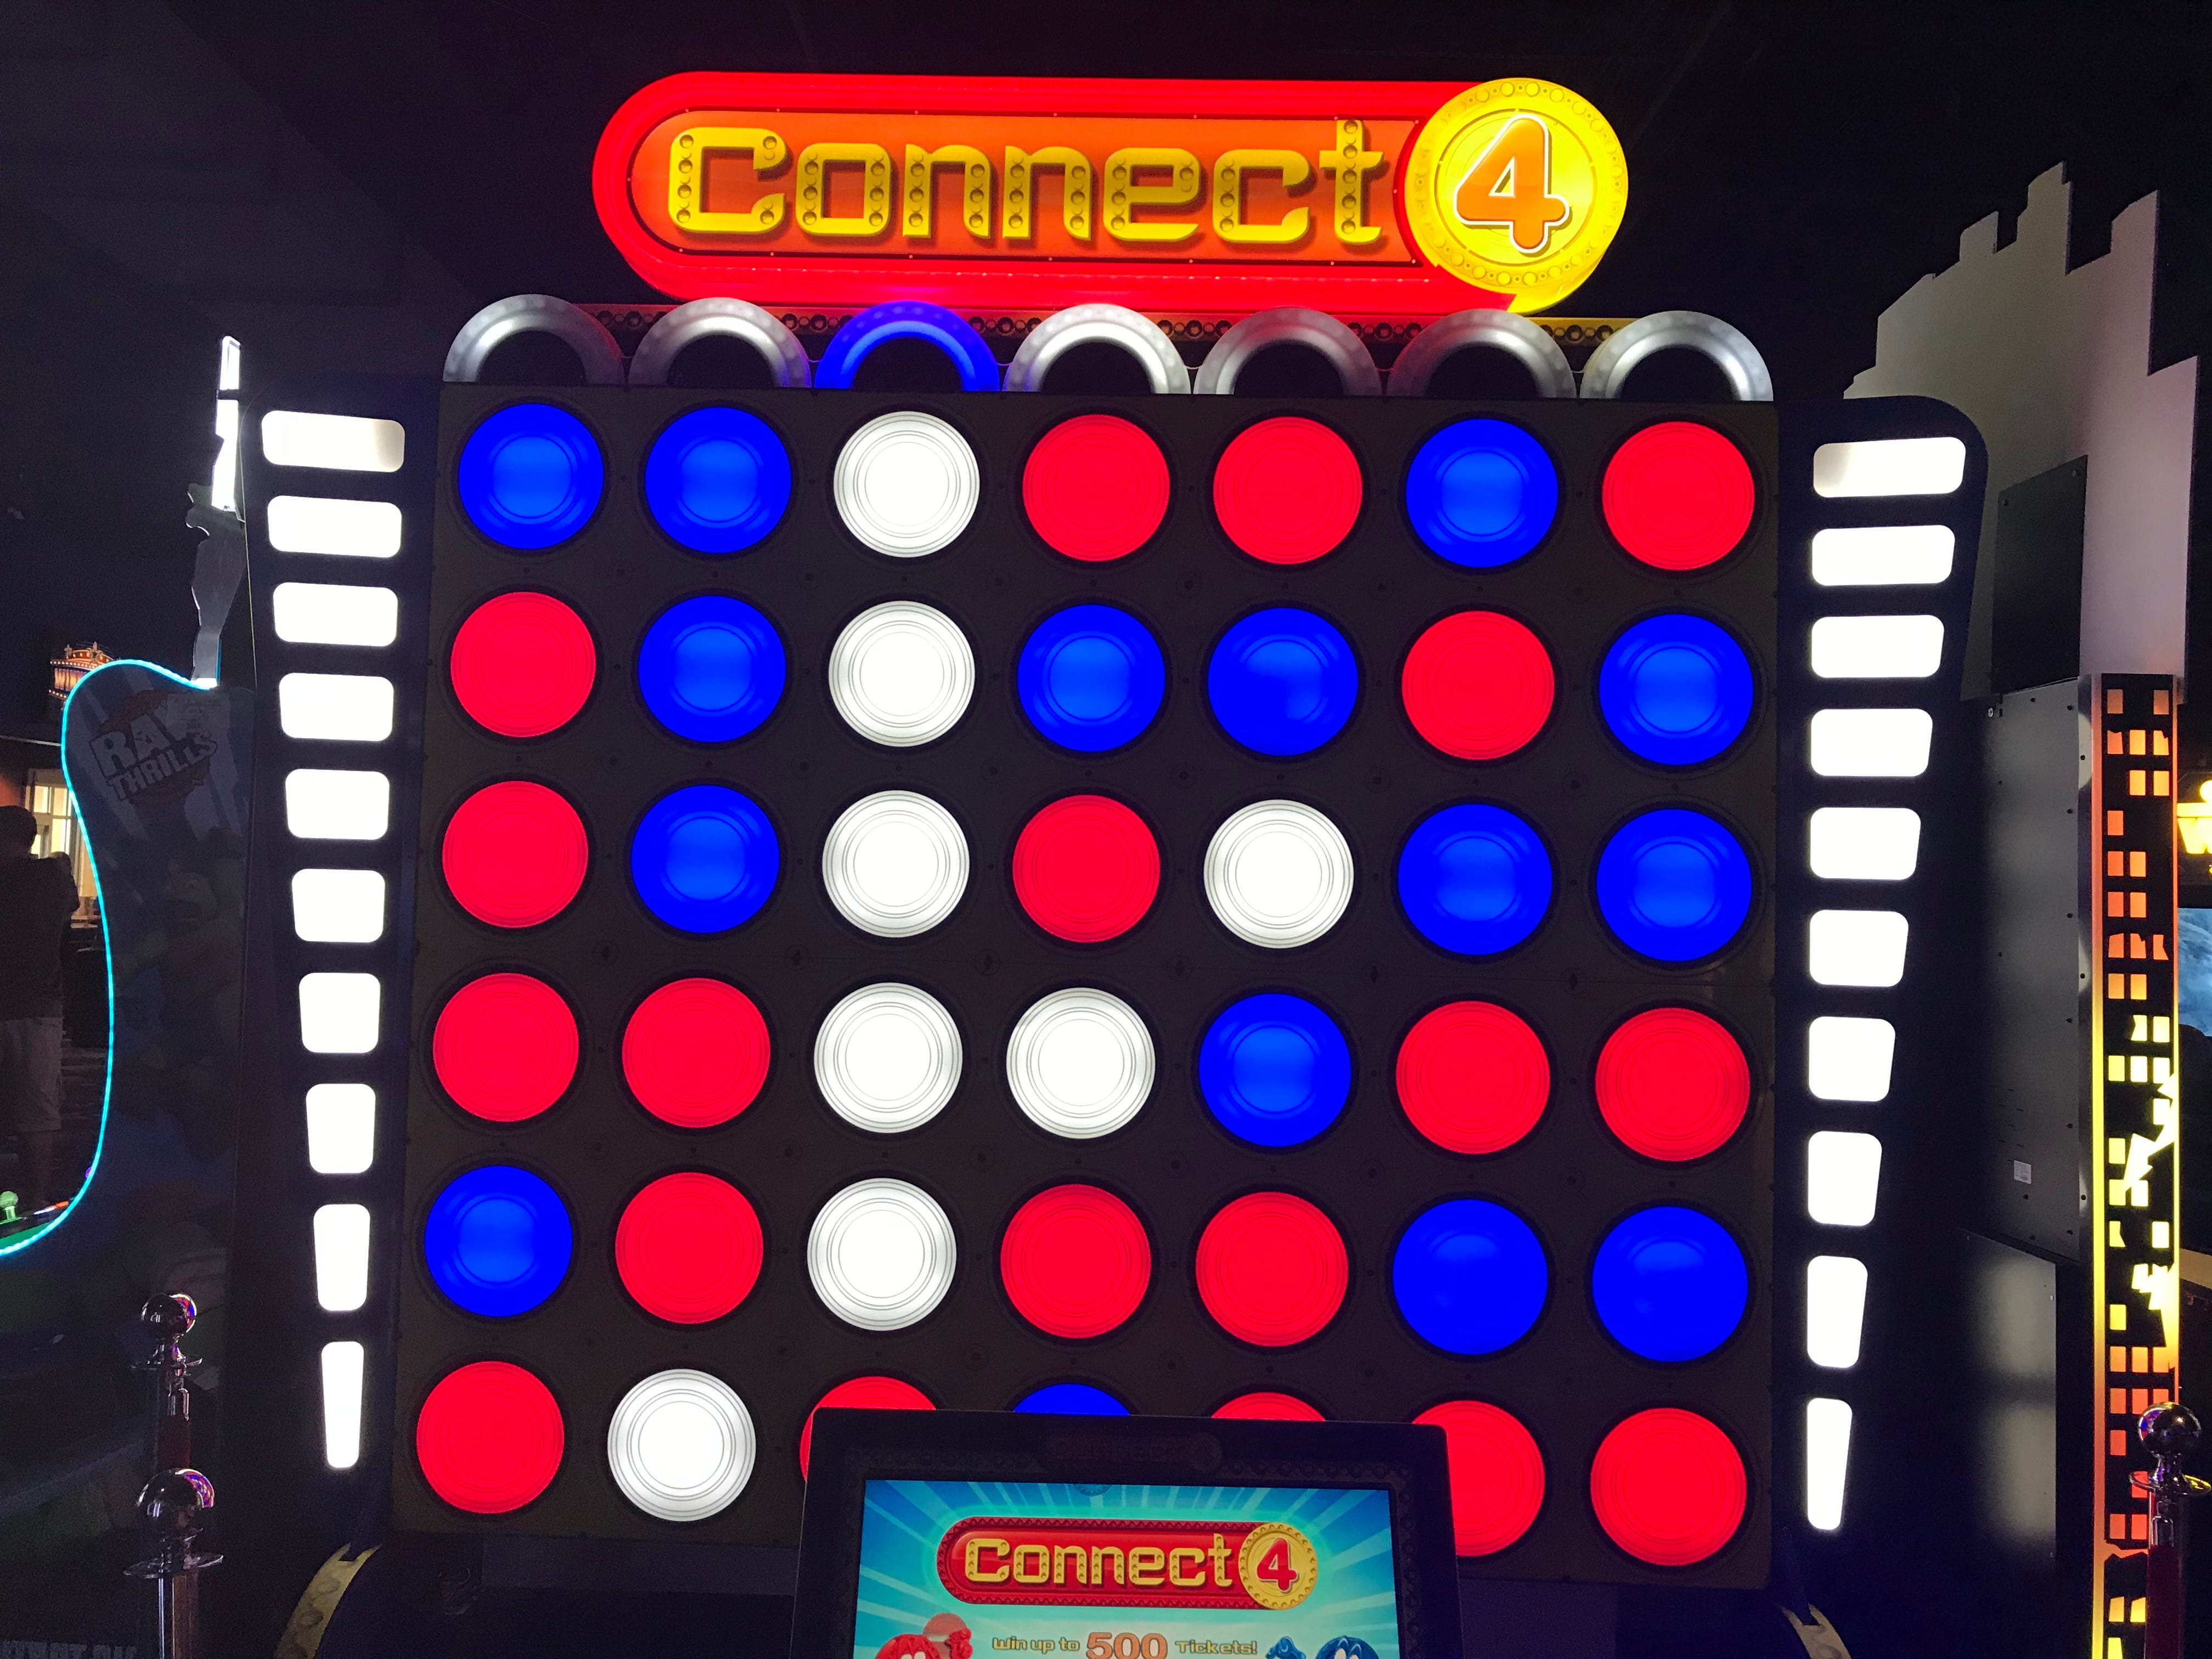 Stars and Strikes in Smyrna, Tenn. has a giant Connect 4 game in its arcade.